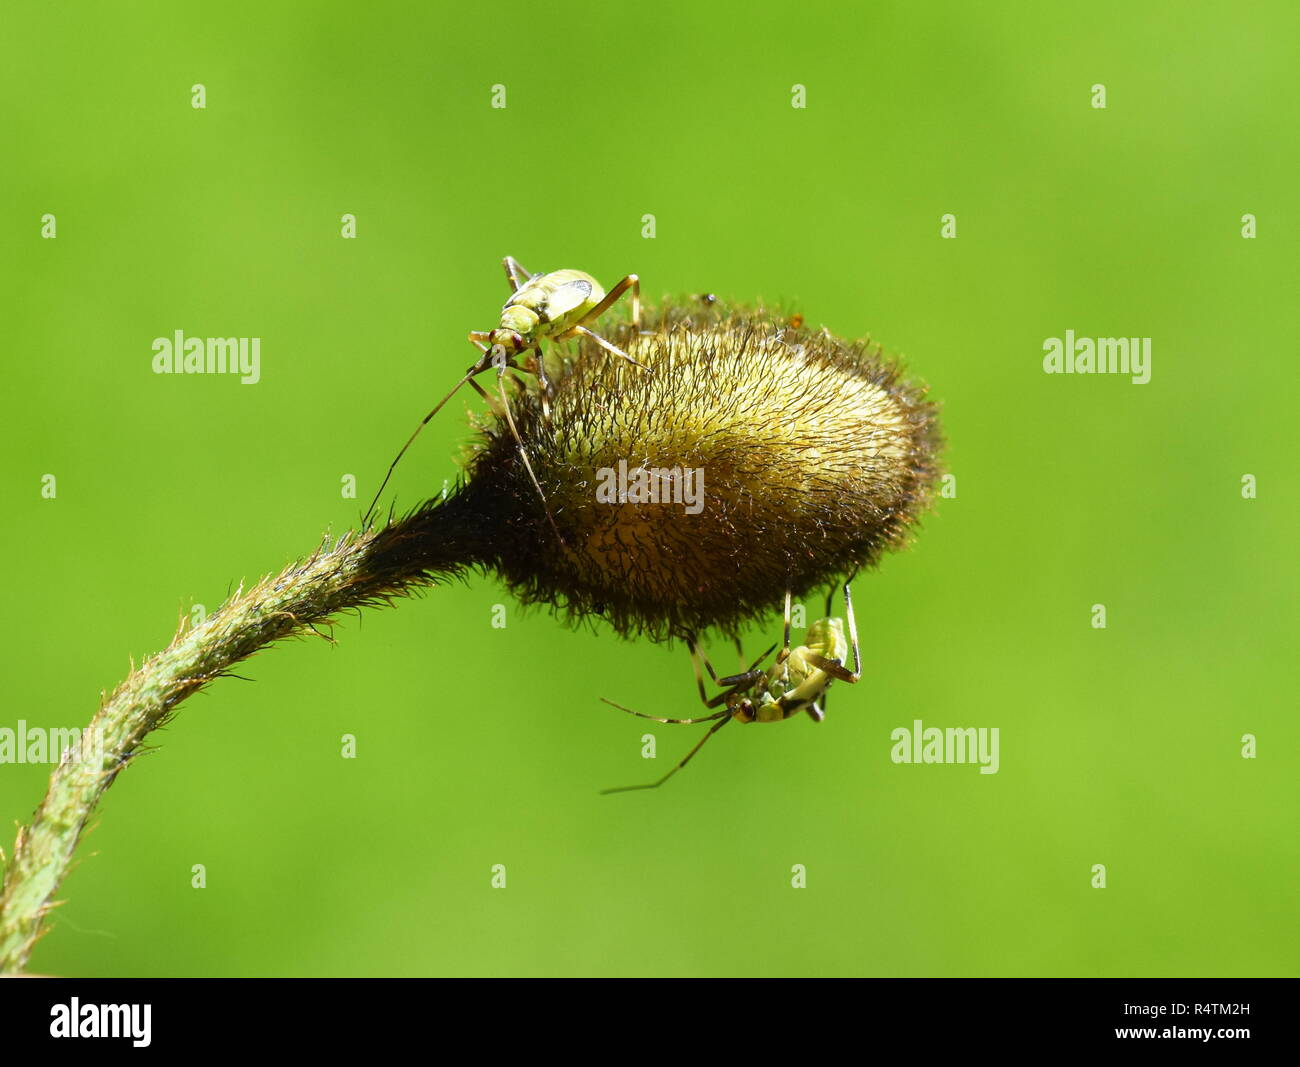 Pest insect Common green capsids Lygocoris pabulinus eating on a poppy flower bud - Stock Image